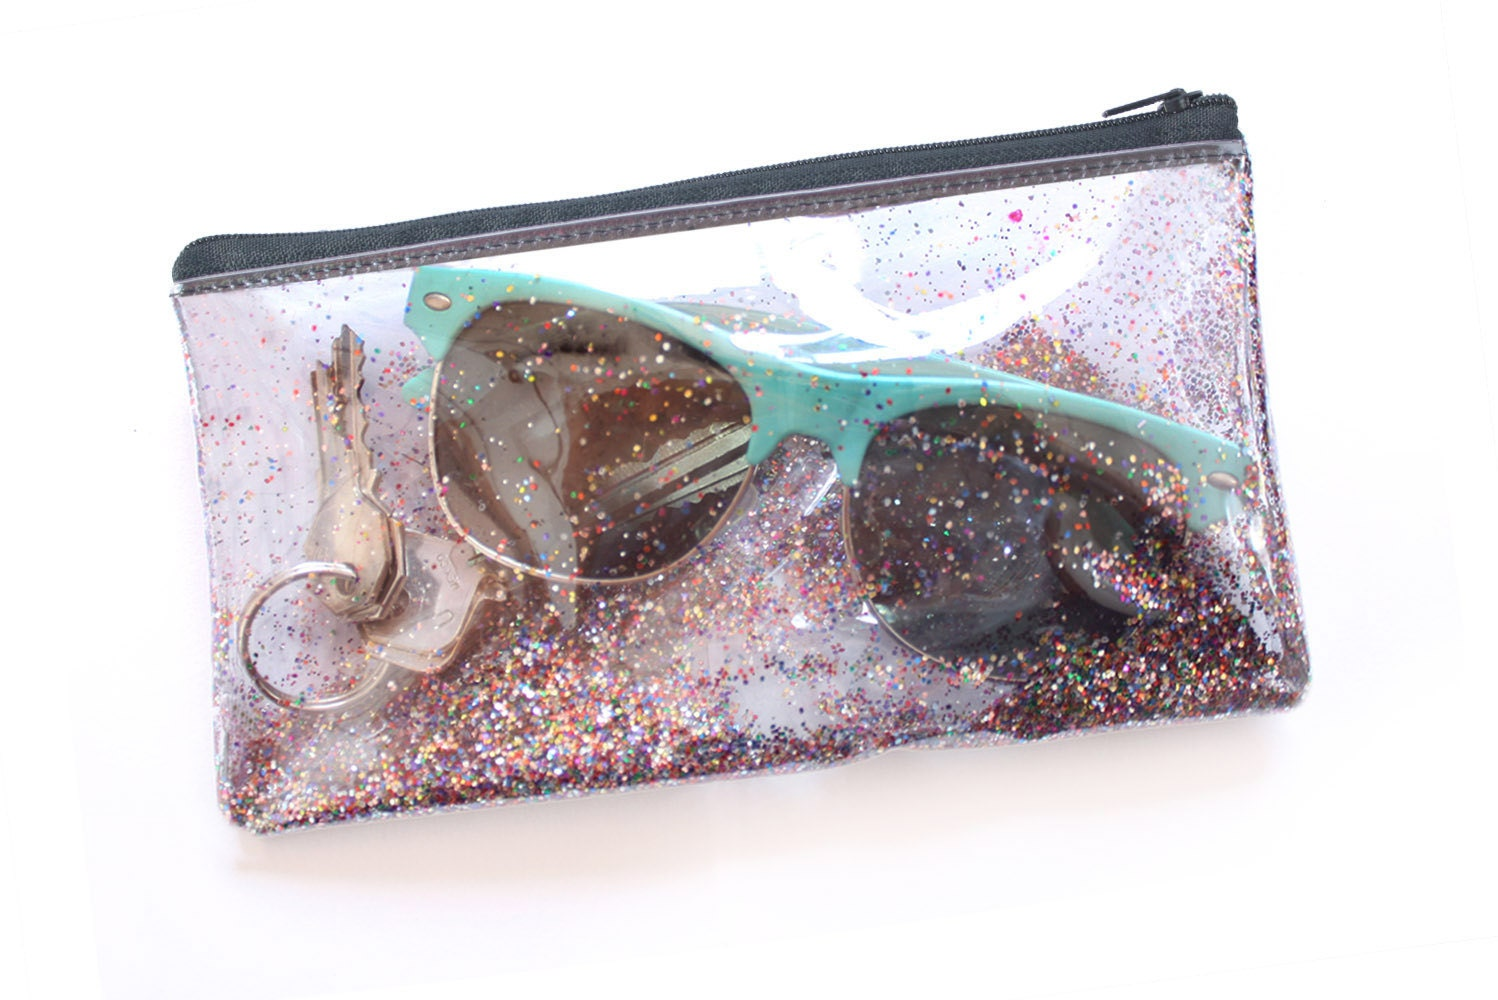 Glitter Party Small Pouch Transparent Handbag Clear Bag